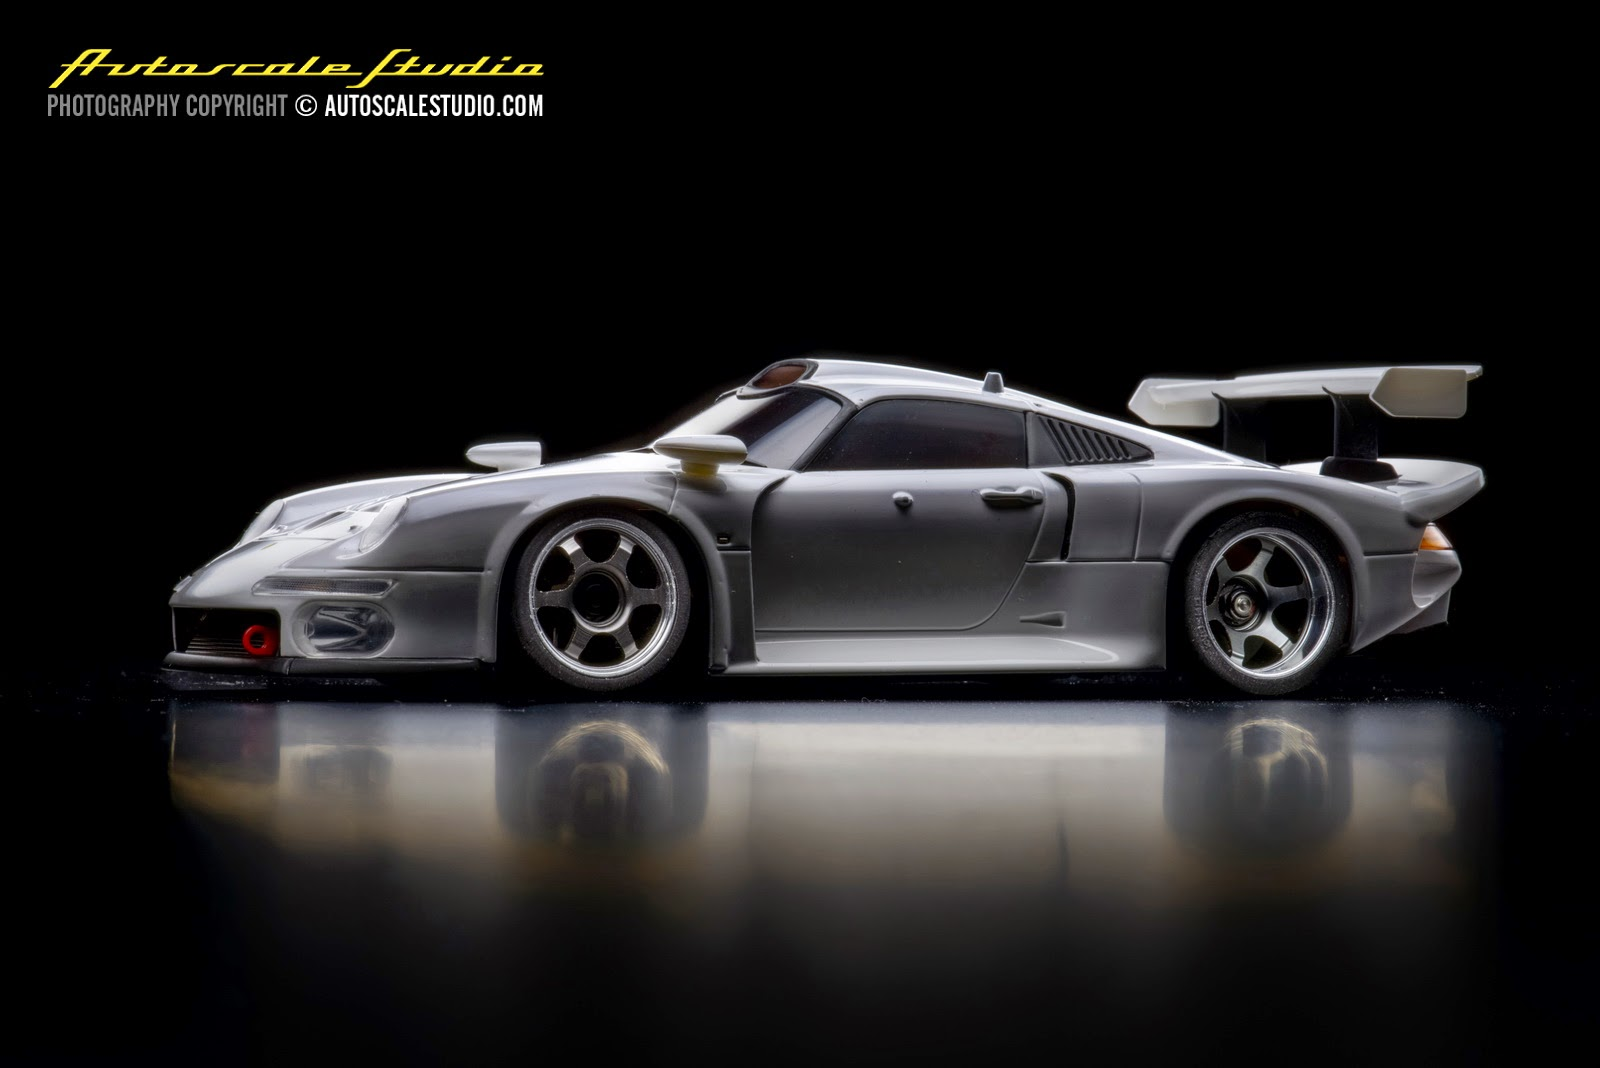 autoscale studio mzp330w porsche 911 gt1 white. Black Bedroom Furniture Sets. Home Design Ideas